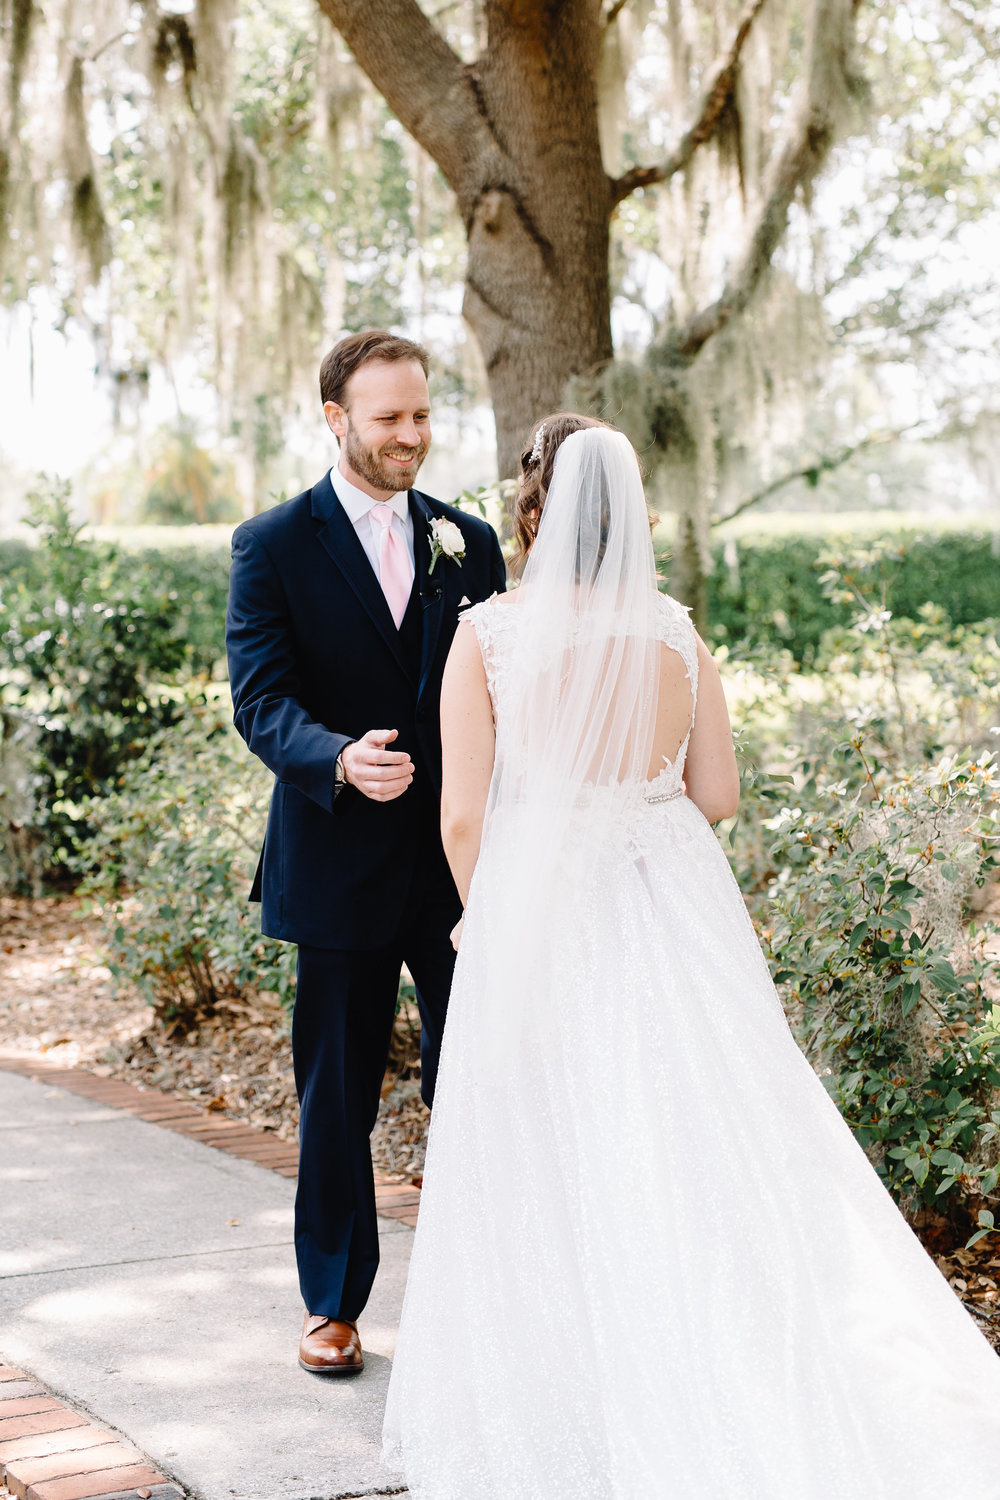 First Look at a Blush & Gold Wedding at Cypress Grove Estate House  Orlando Wedding Florist Bluegrass Chic  Orlando Bridal Salon Calvet Couture  Orlando Wedding Planner Blue Ribbon Weddings  Orlando Wedding Photographer JP Pratt Photography  Wedding Ceremony at Cypress Grove Estate House  Tented Lakeside Wedding Reception at Cypress Grove Estate House